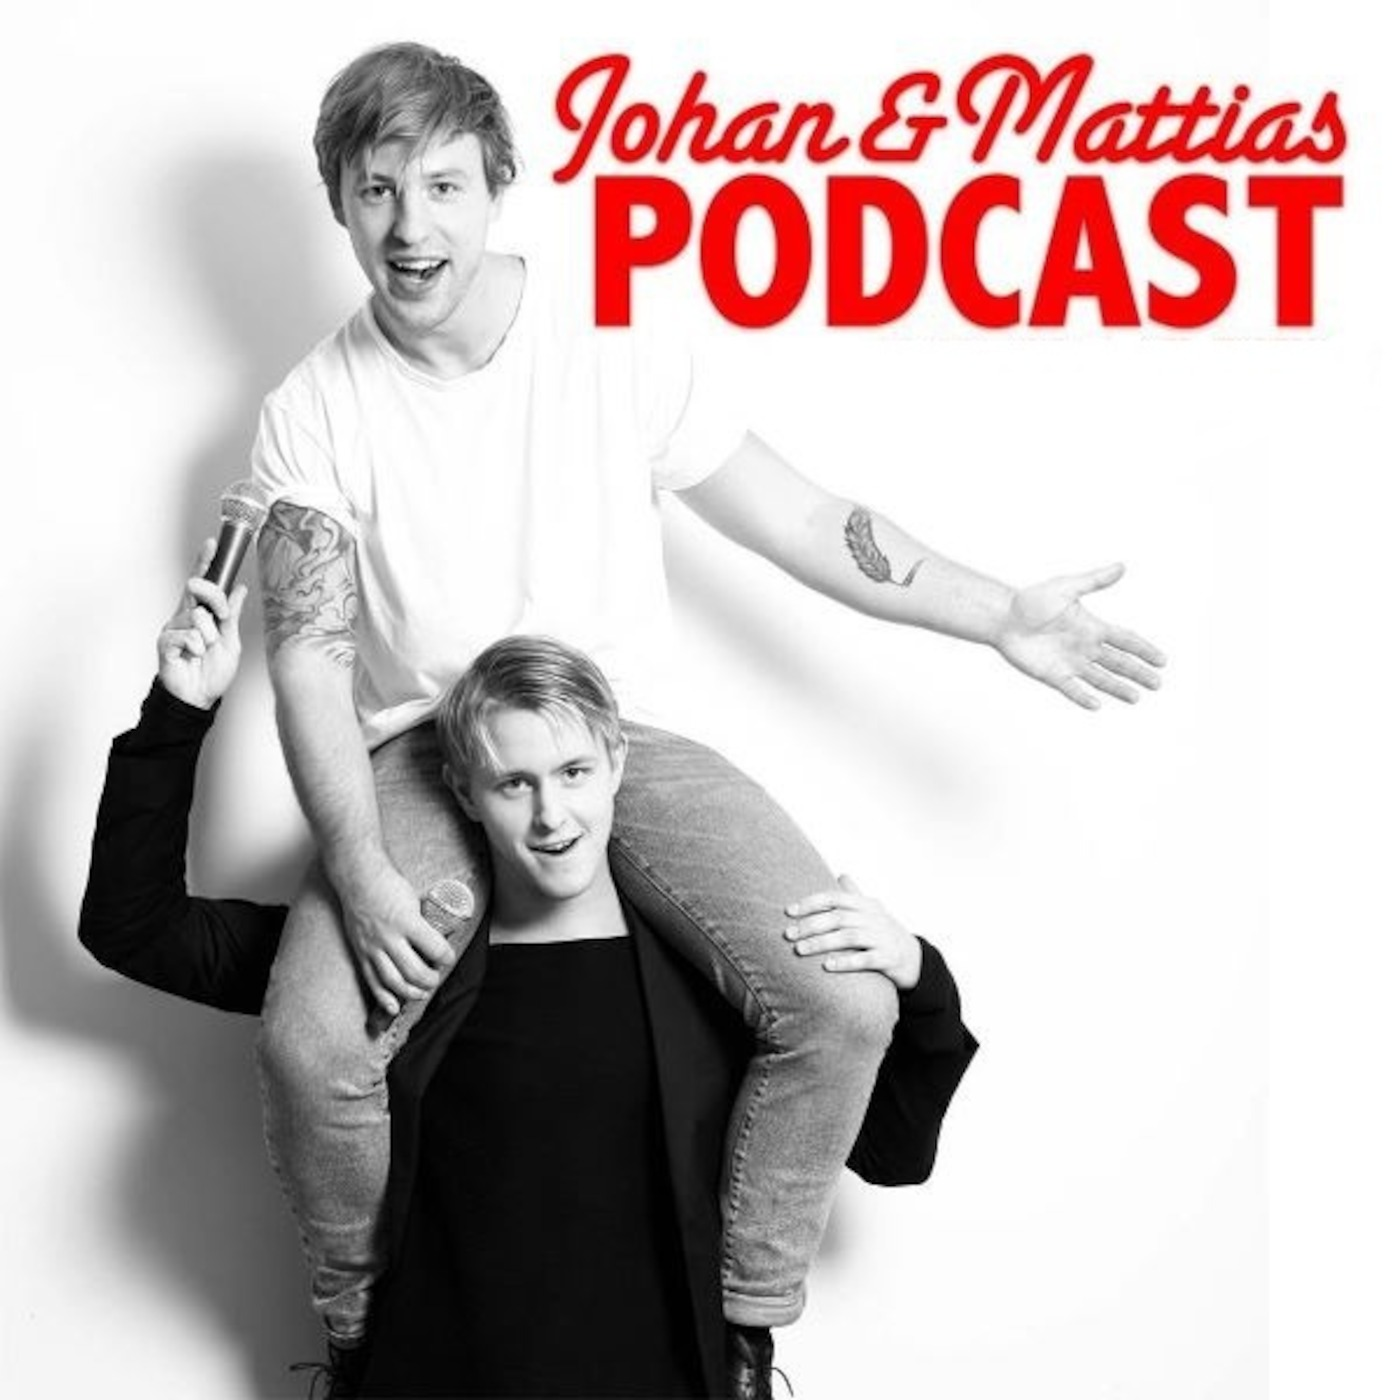 Johan och Mattias podcast